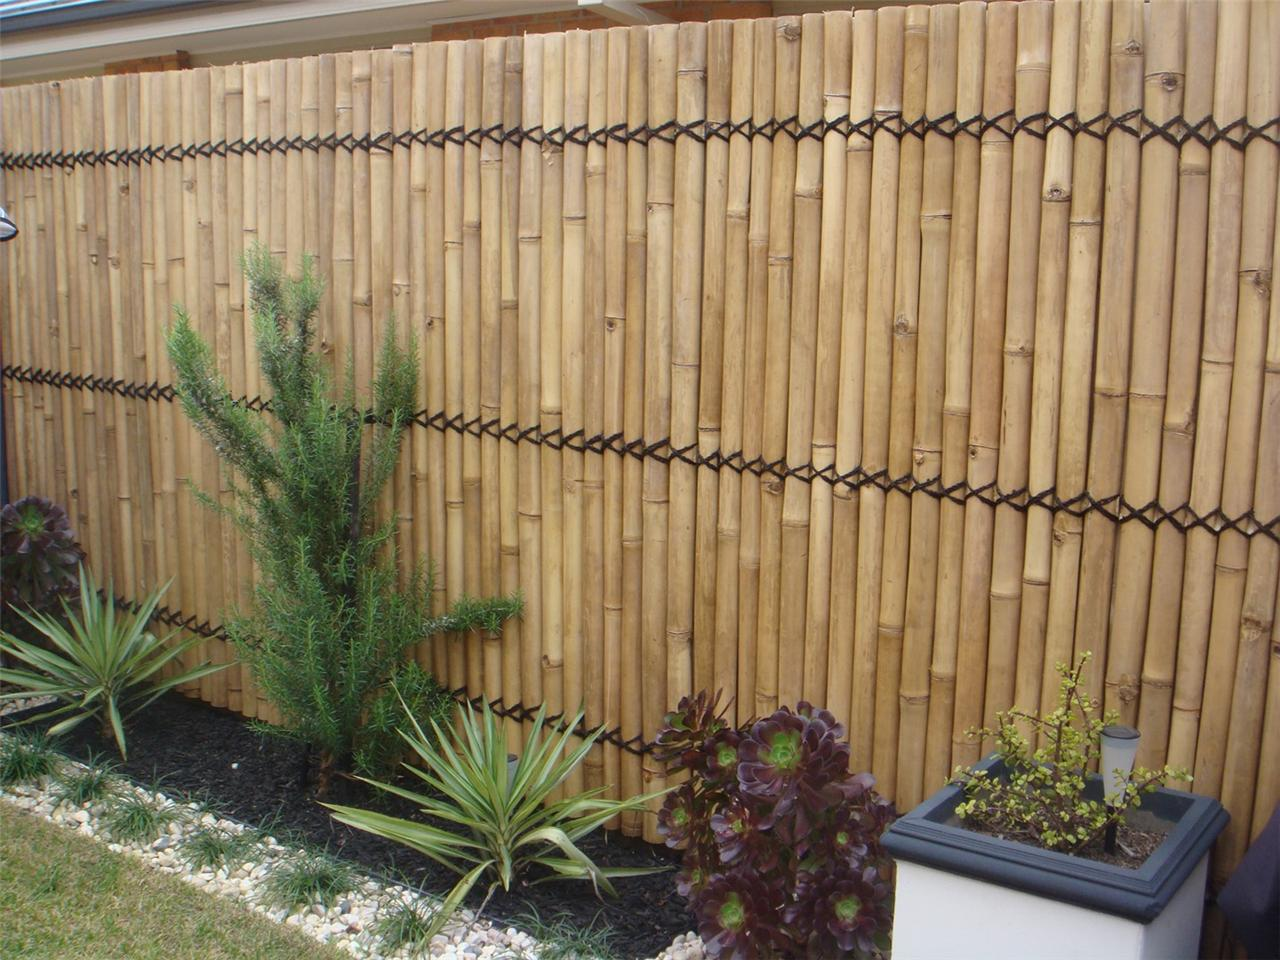 Top bamboo screens fencing ideas wallpapers for Garden screening ideas